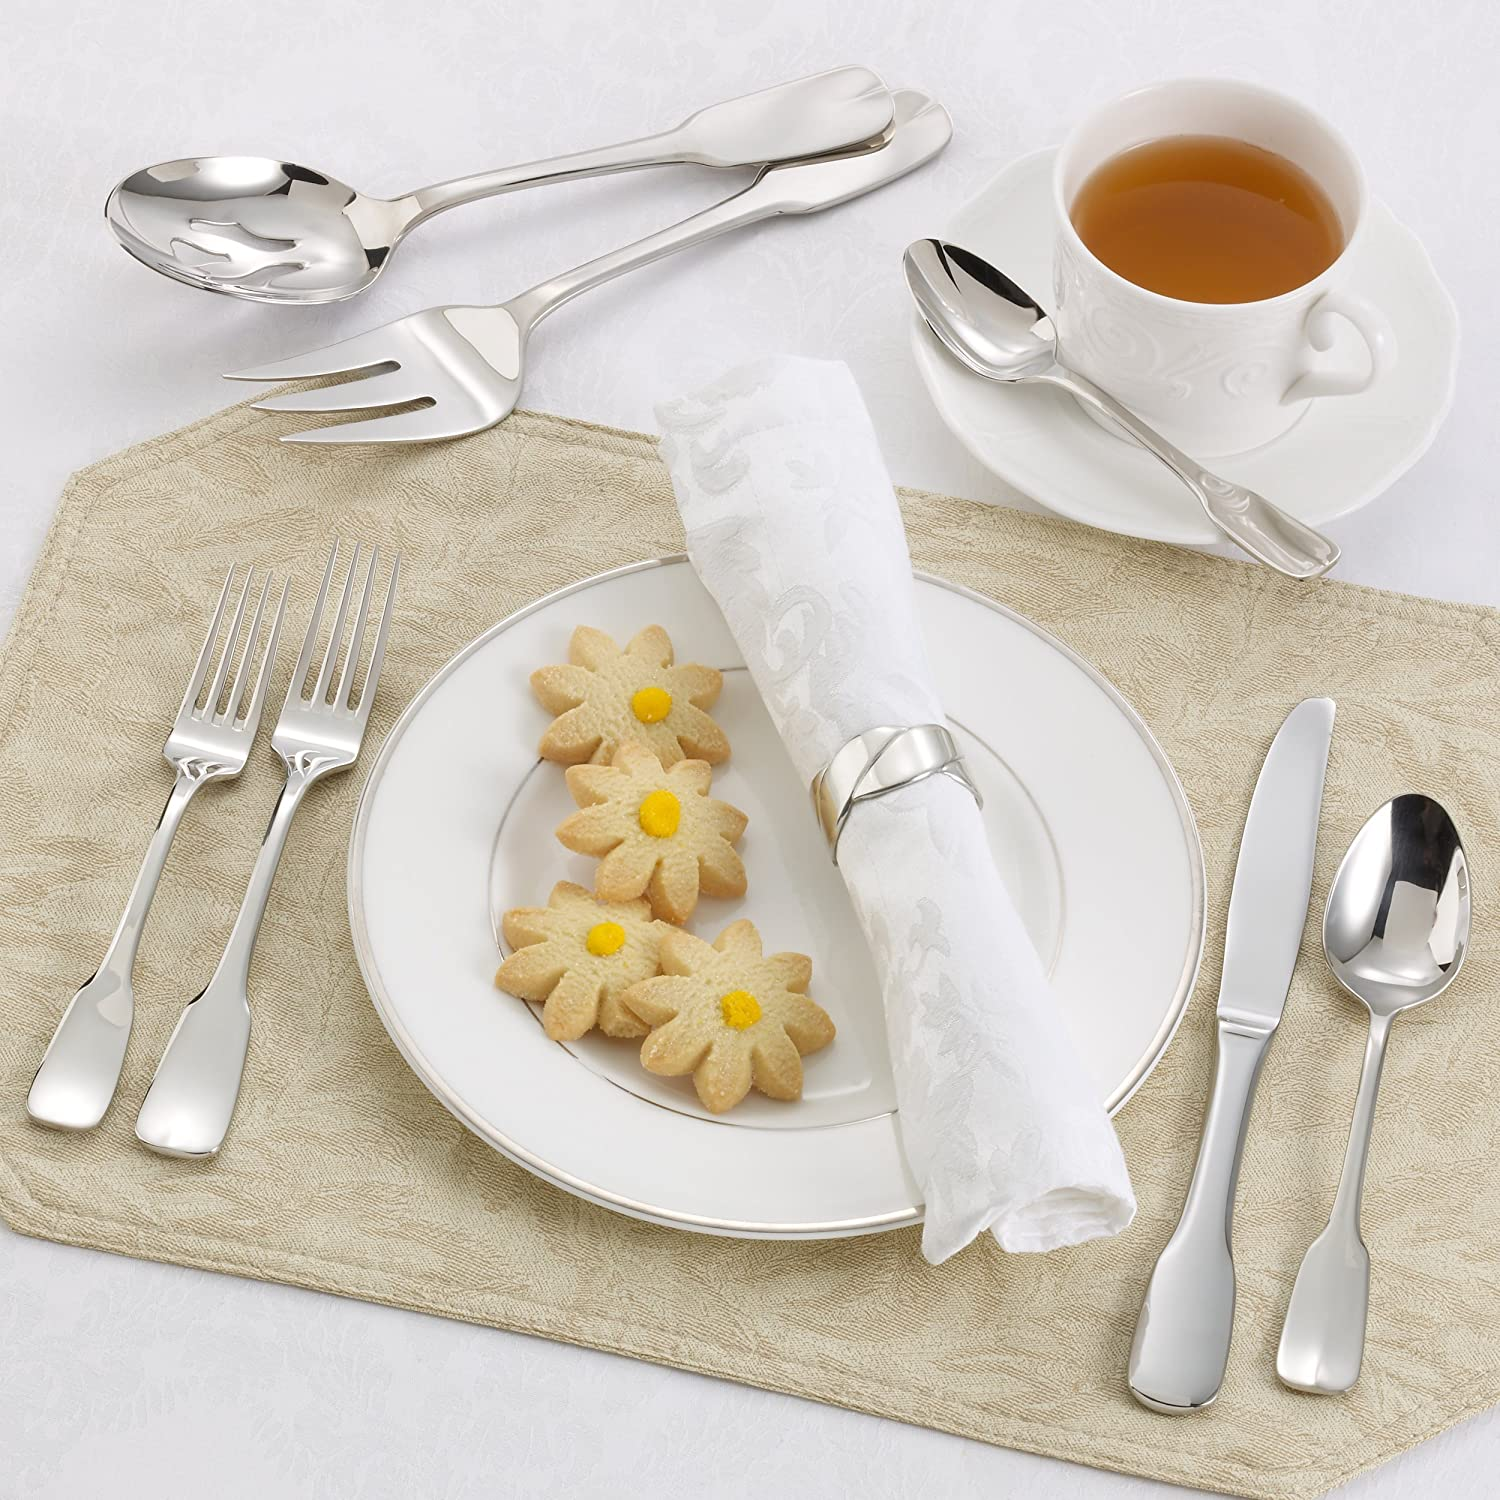 Service for 1 15035-4 Ginkgo International Alsace 5-Piece Stainless Steel Serving Place Setting